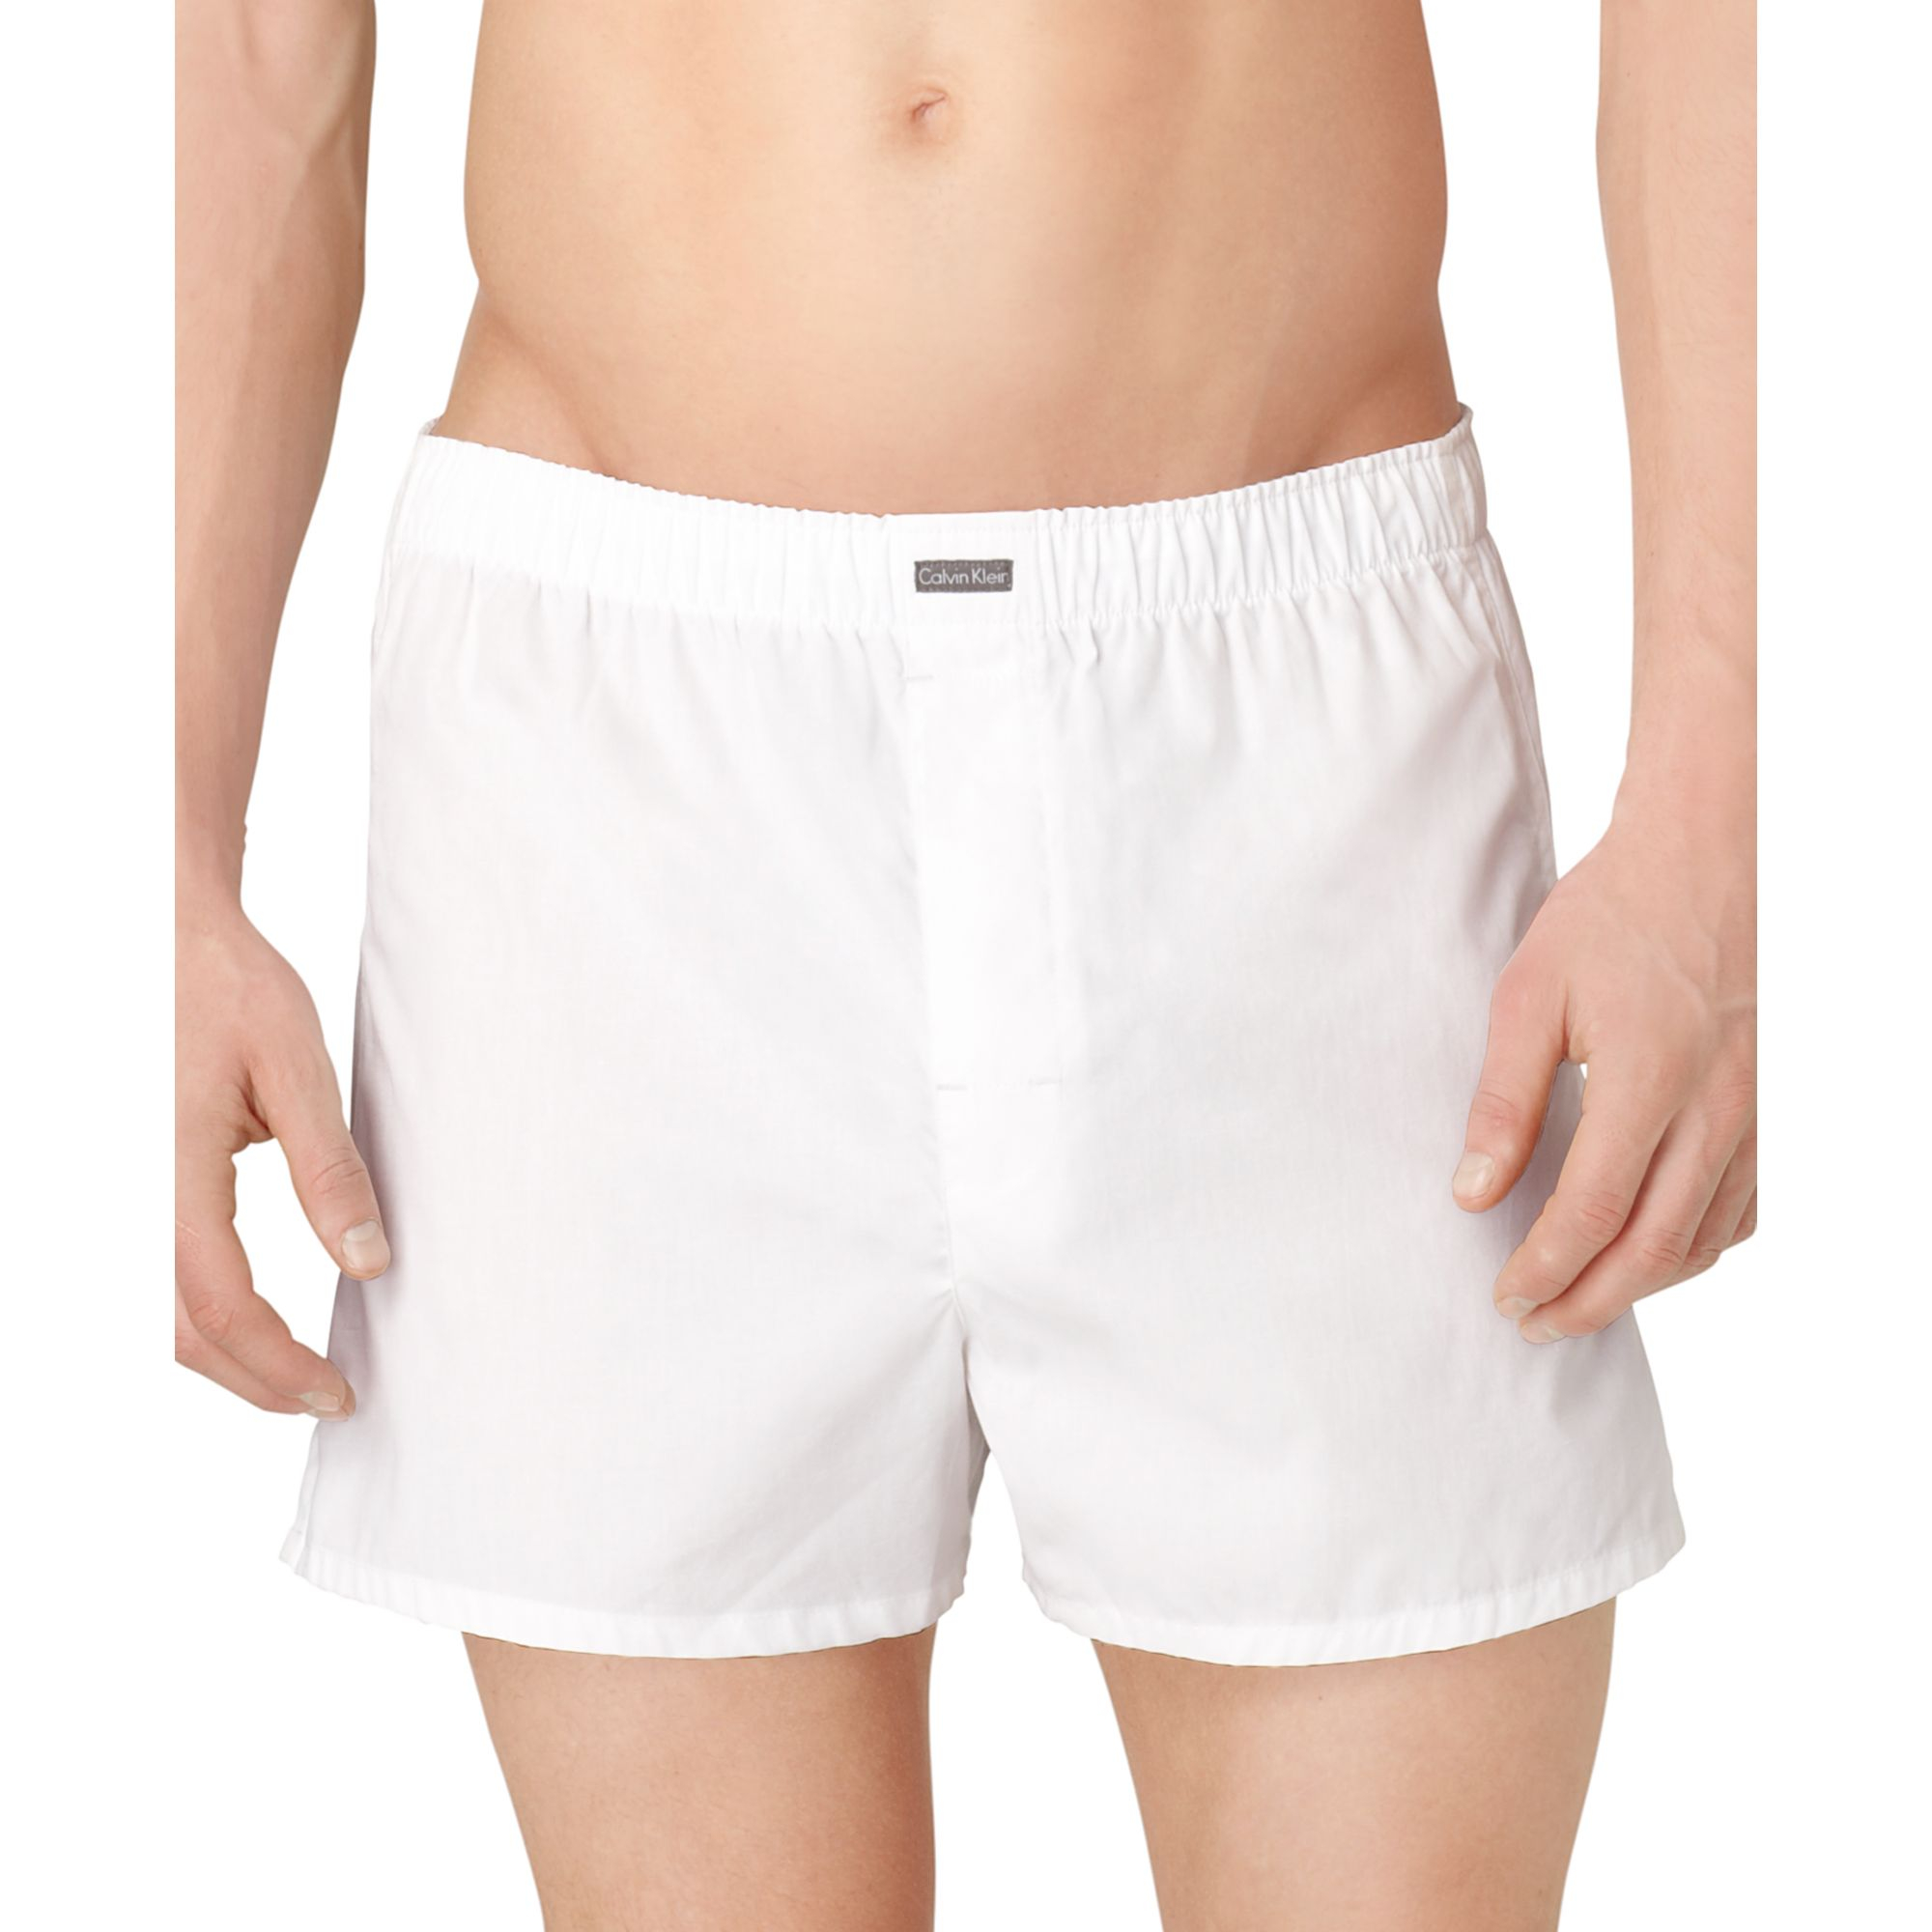 calvin klein men s classic boxers 3 pack in white for men stripe dark